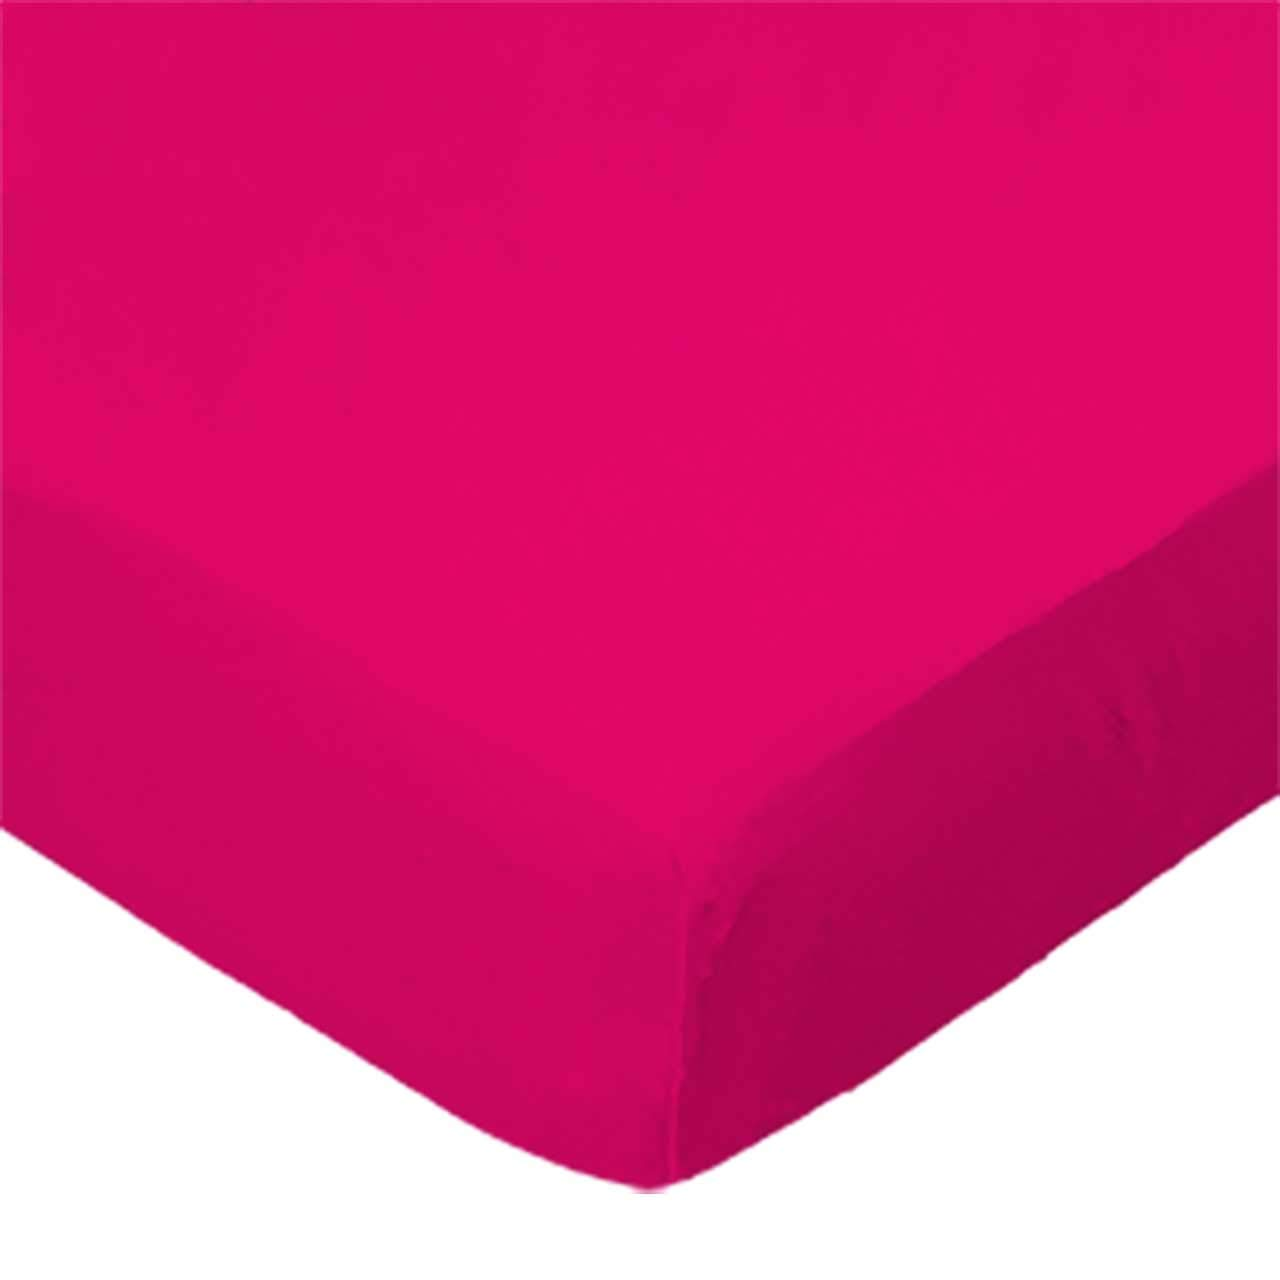 SheetWorld Fitted (Fits BabyBjorn Travel Crib Light) Sheet - Hot Pink Jersey Knit - Solid Colors by sheetworld   B004FUNGN4